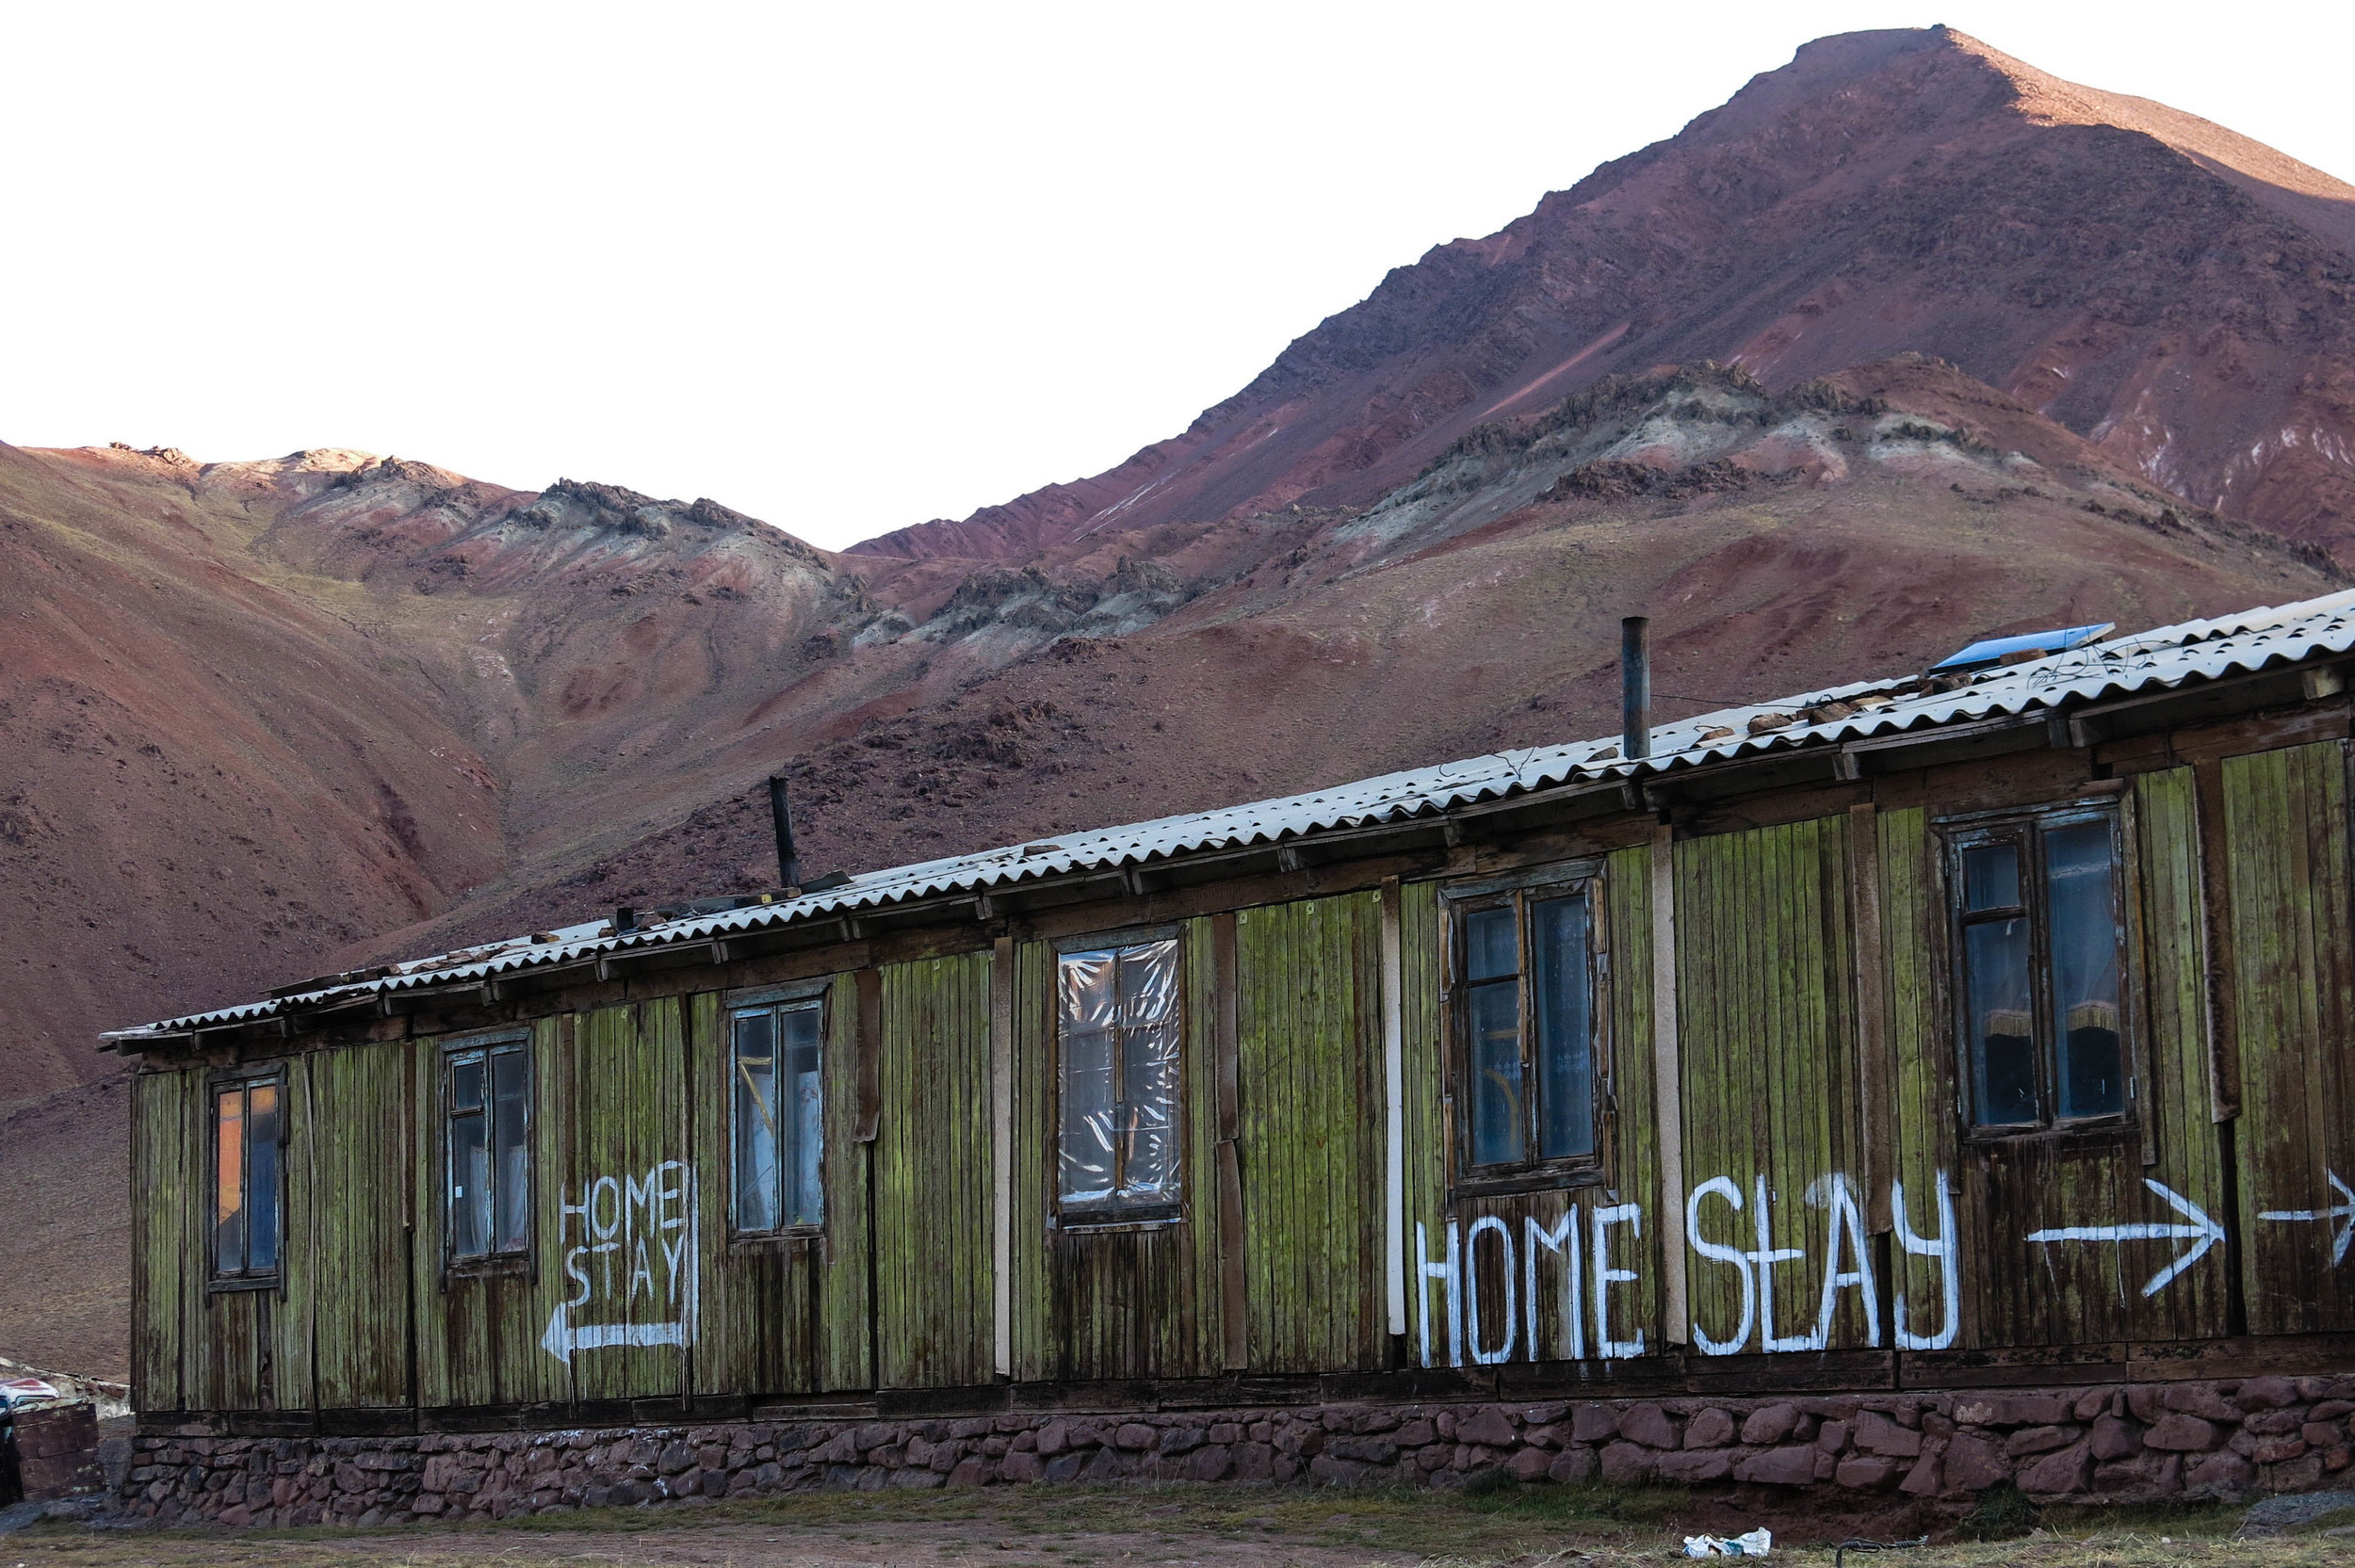 We wondered at how a couple barely beyond their teens ended up living in this cold valley in the no man's land between Kyrgyzstan and Tajikistan. PHOTO: ISOBEL EWING